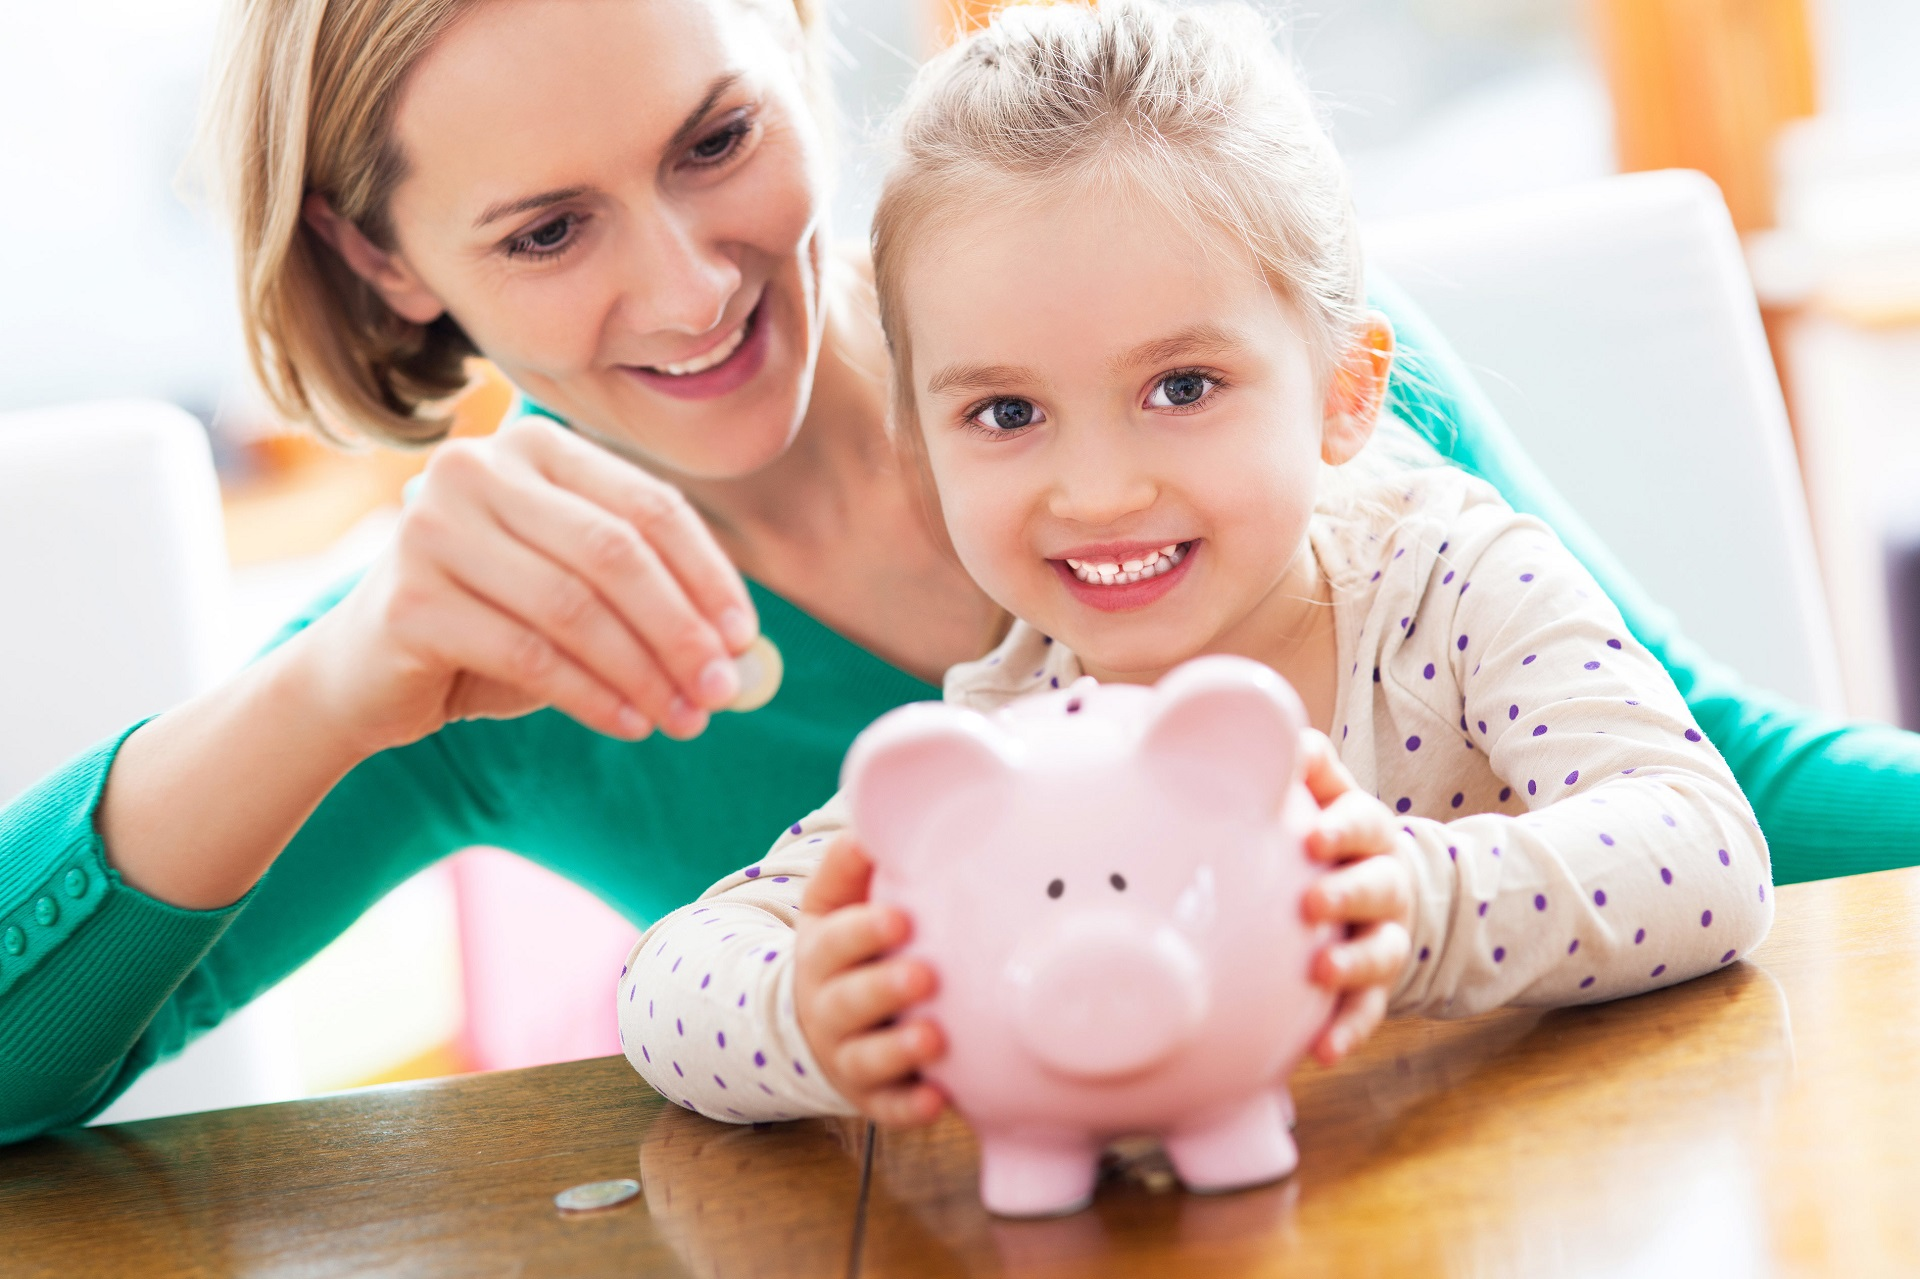 5 Easy Ways to Teach Your Kids About Money